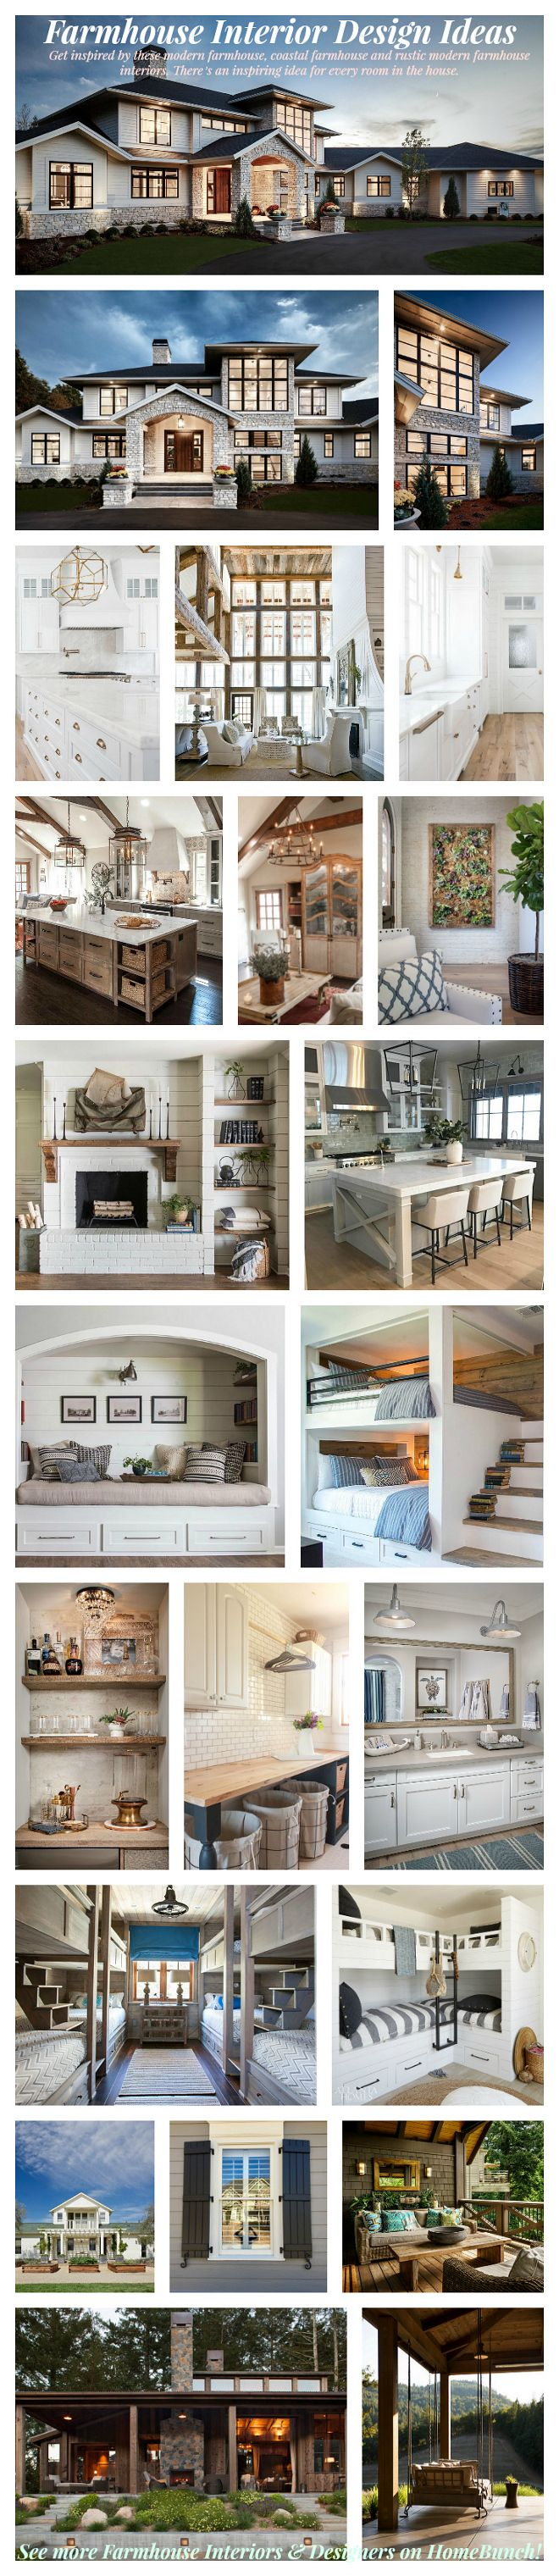 Farmhouse Interiors. Get inspired by these modern farmhouse, coastal farmhouse and rustic modern farmhouse interiors. There's an inspiring idea for every room in the house. #Farmhouse #FarmhouseInteriors #coastalFarmhouse #modernFarmhouse #rusticFarmhouse